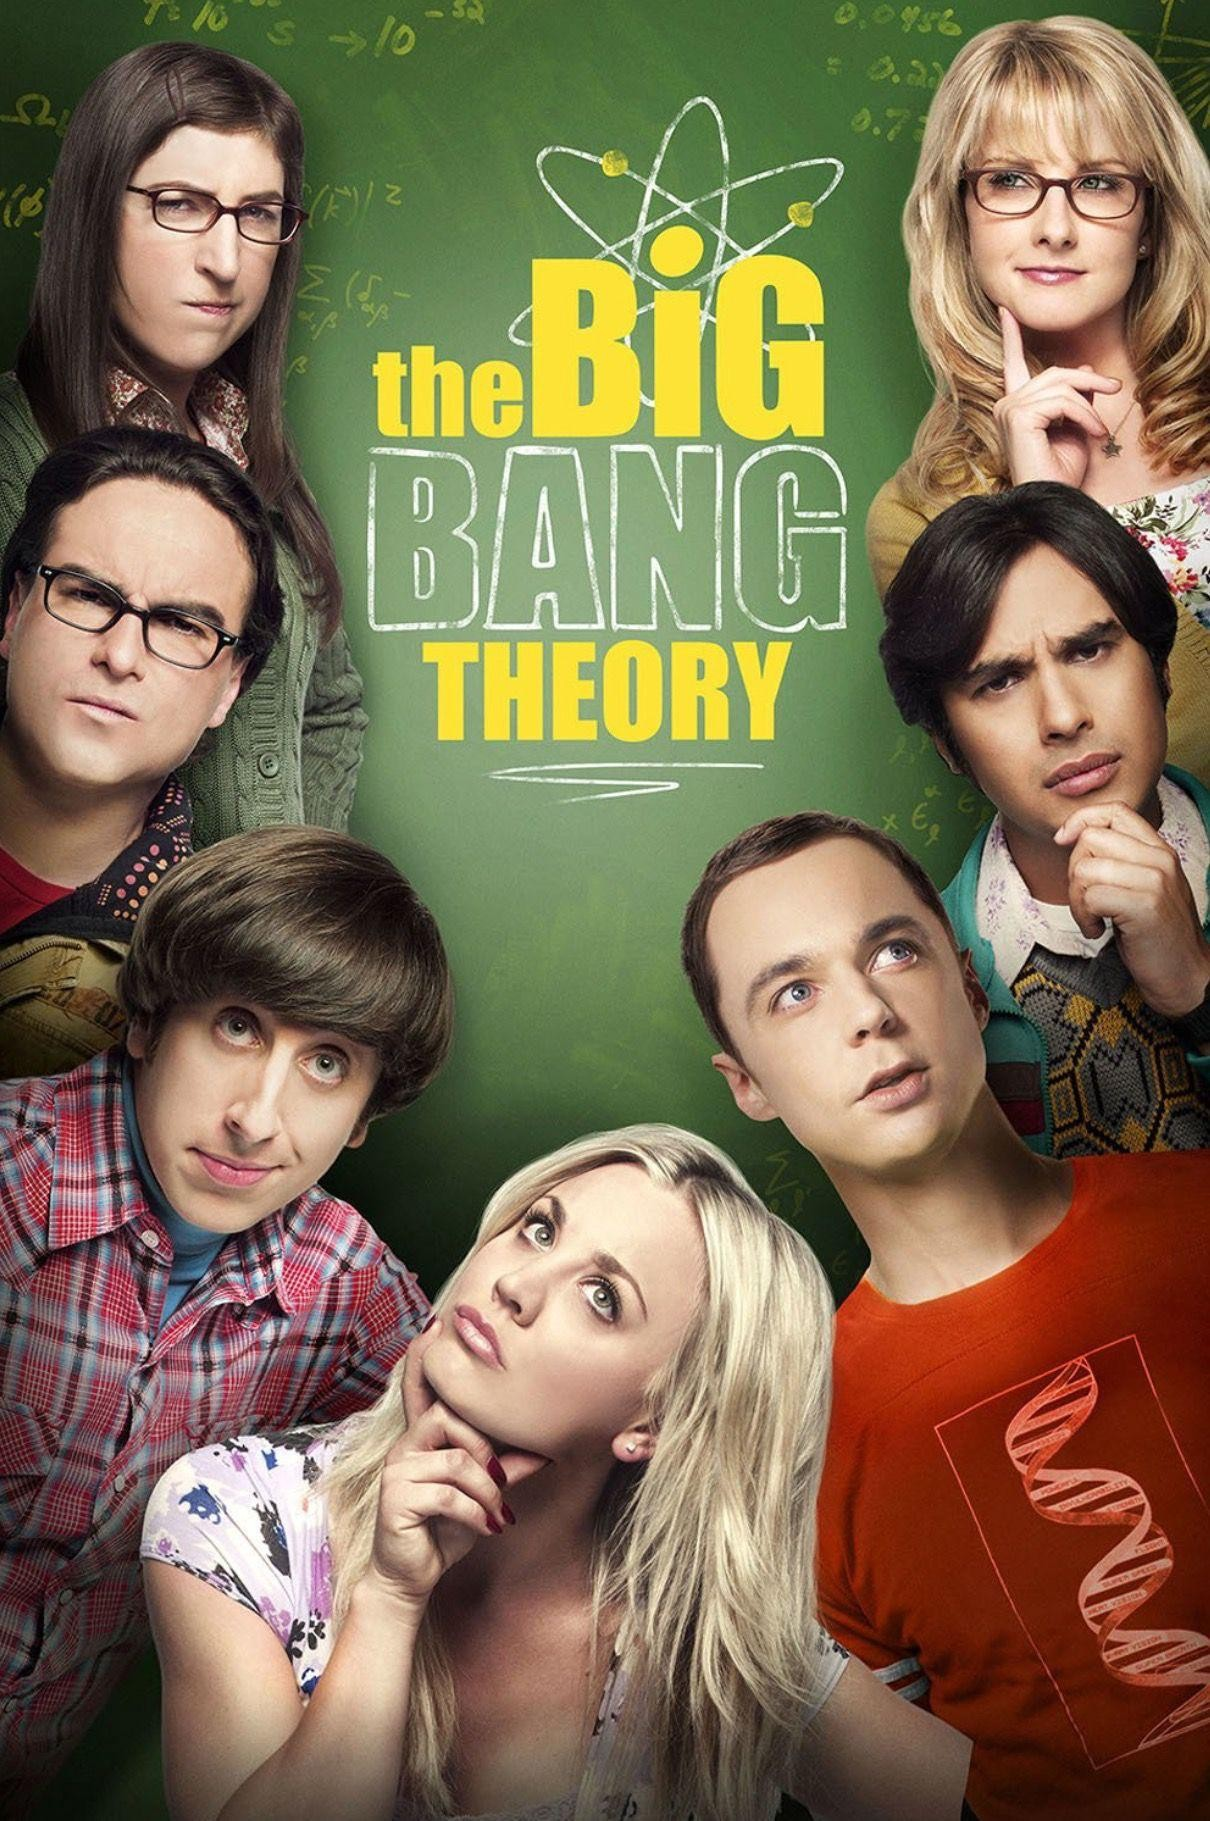 The Big Bang Theory (Season 12) 生活大爆炸 第十二季